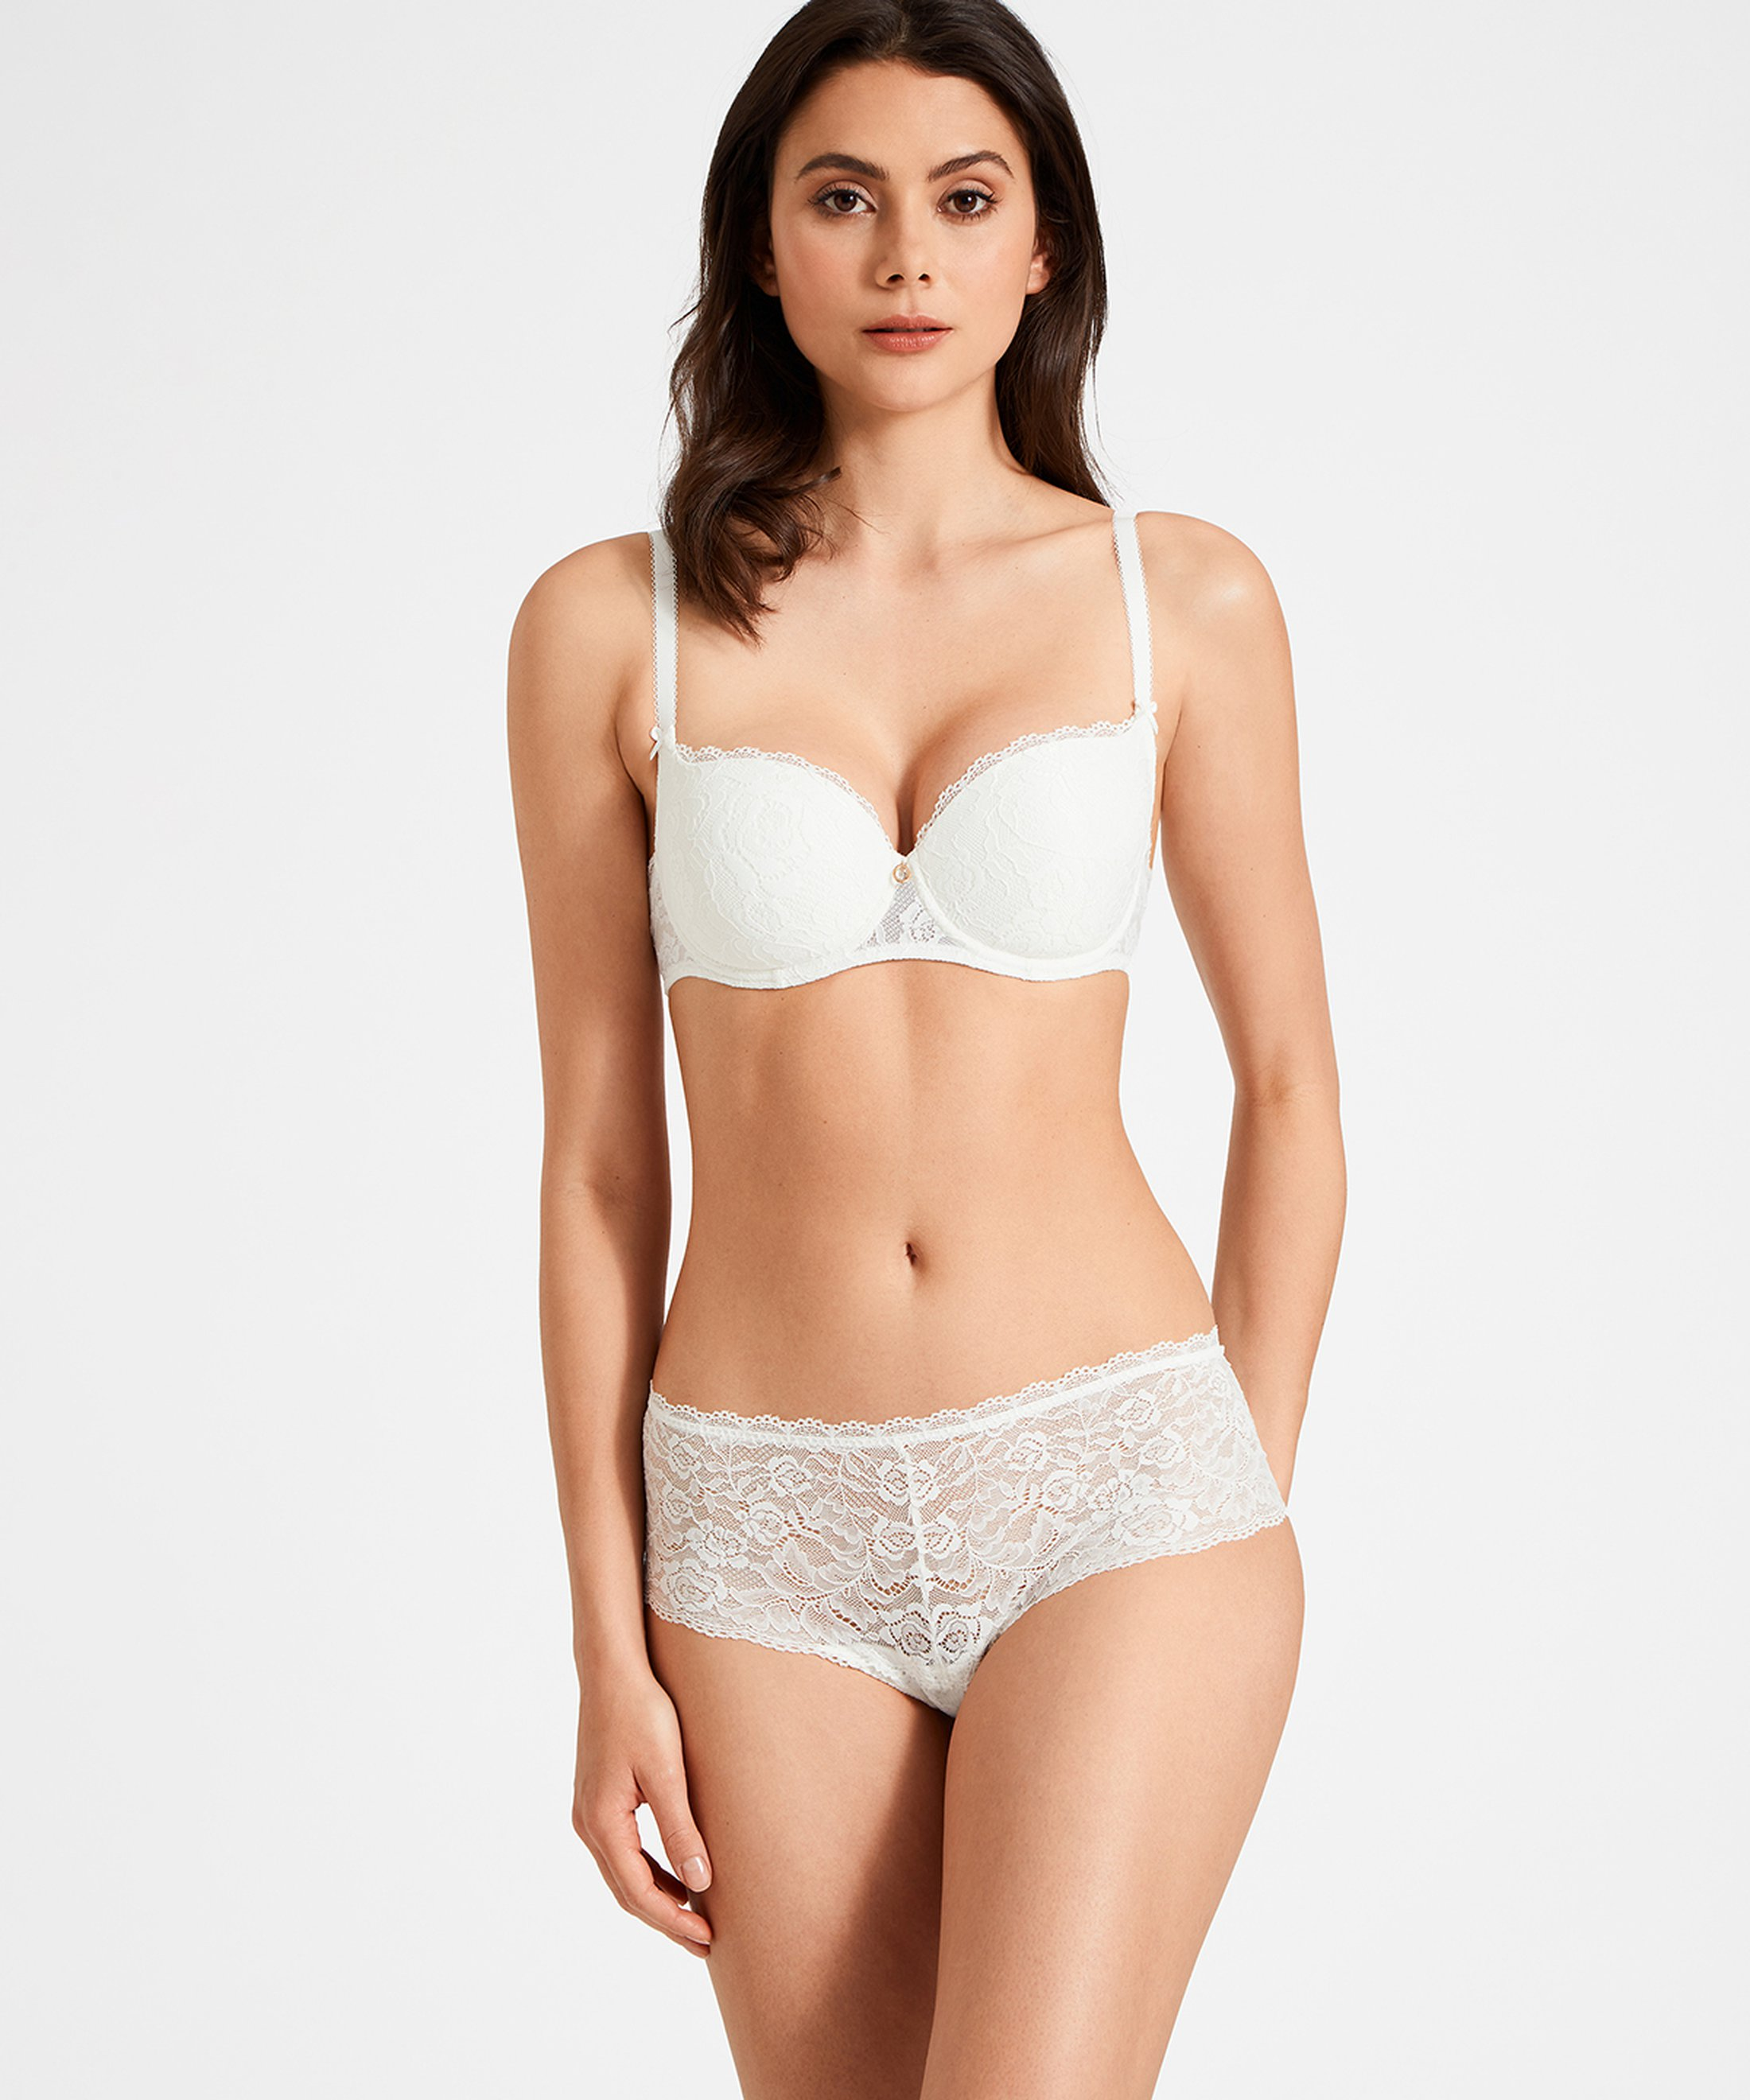 ROSESSENCE Moulded half-cup bra Opale | Aubade